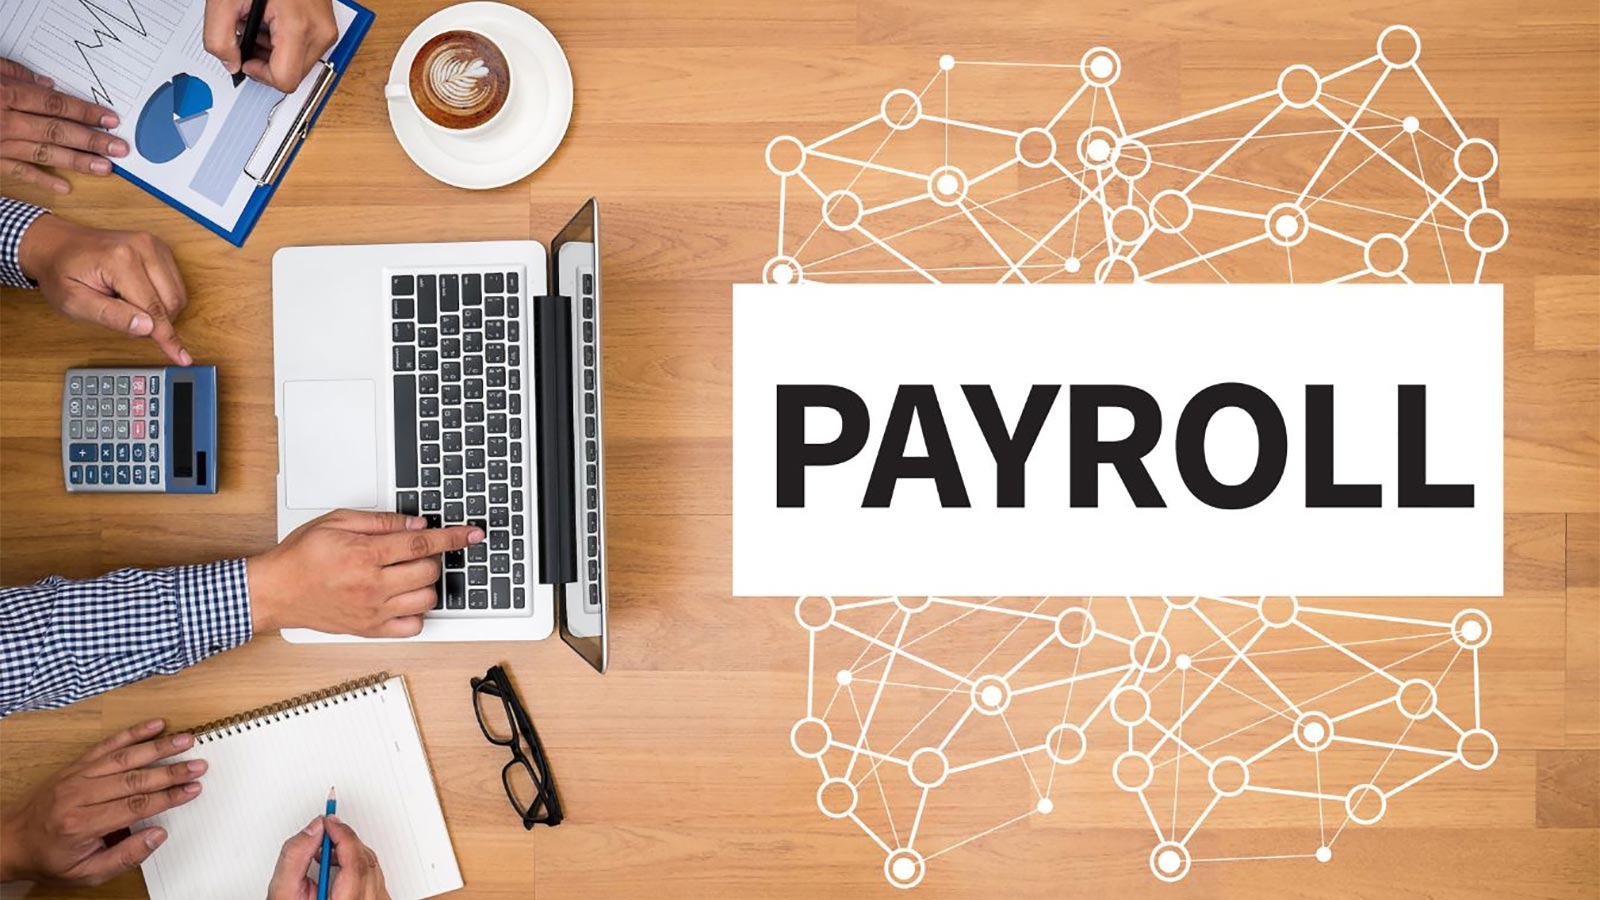 6 Tips on Starting Payroll Systems for Small Businesses